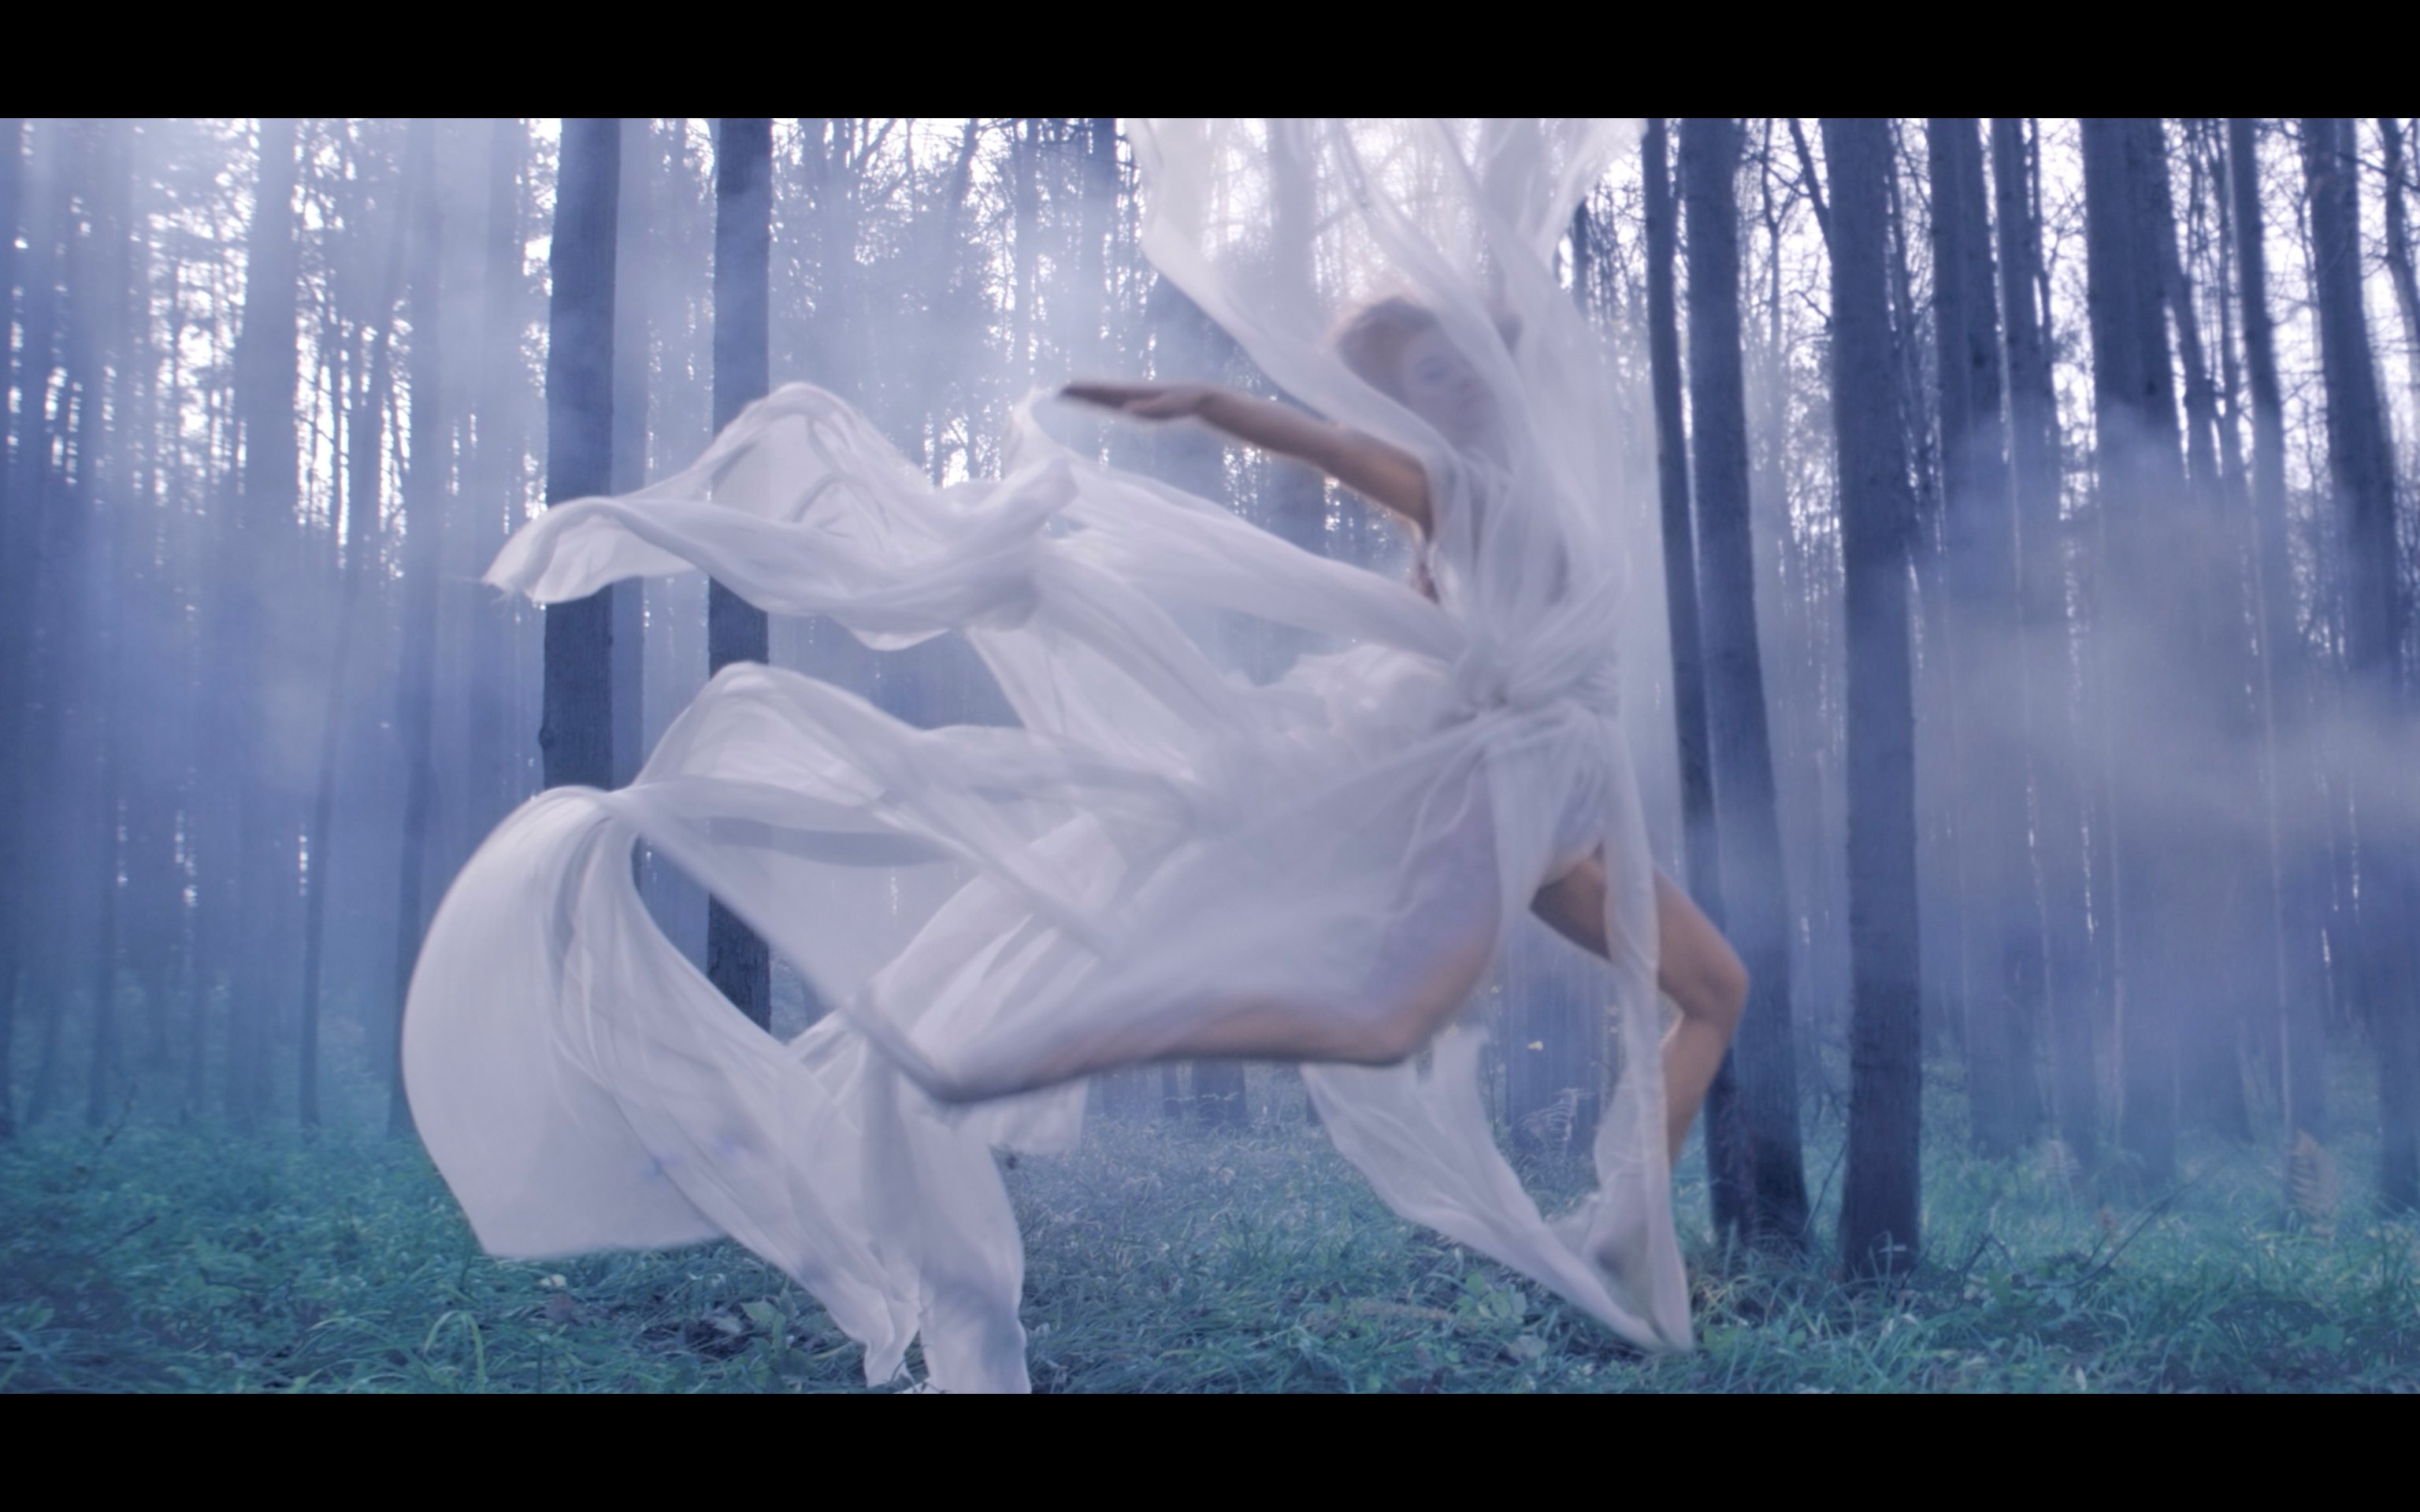 Still from the At Dawn video artwork, 2014